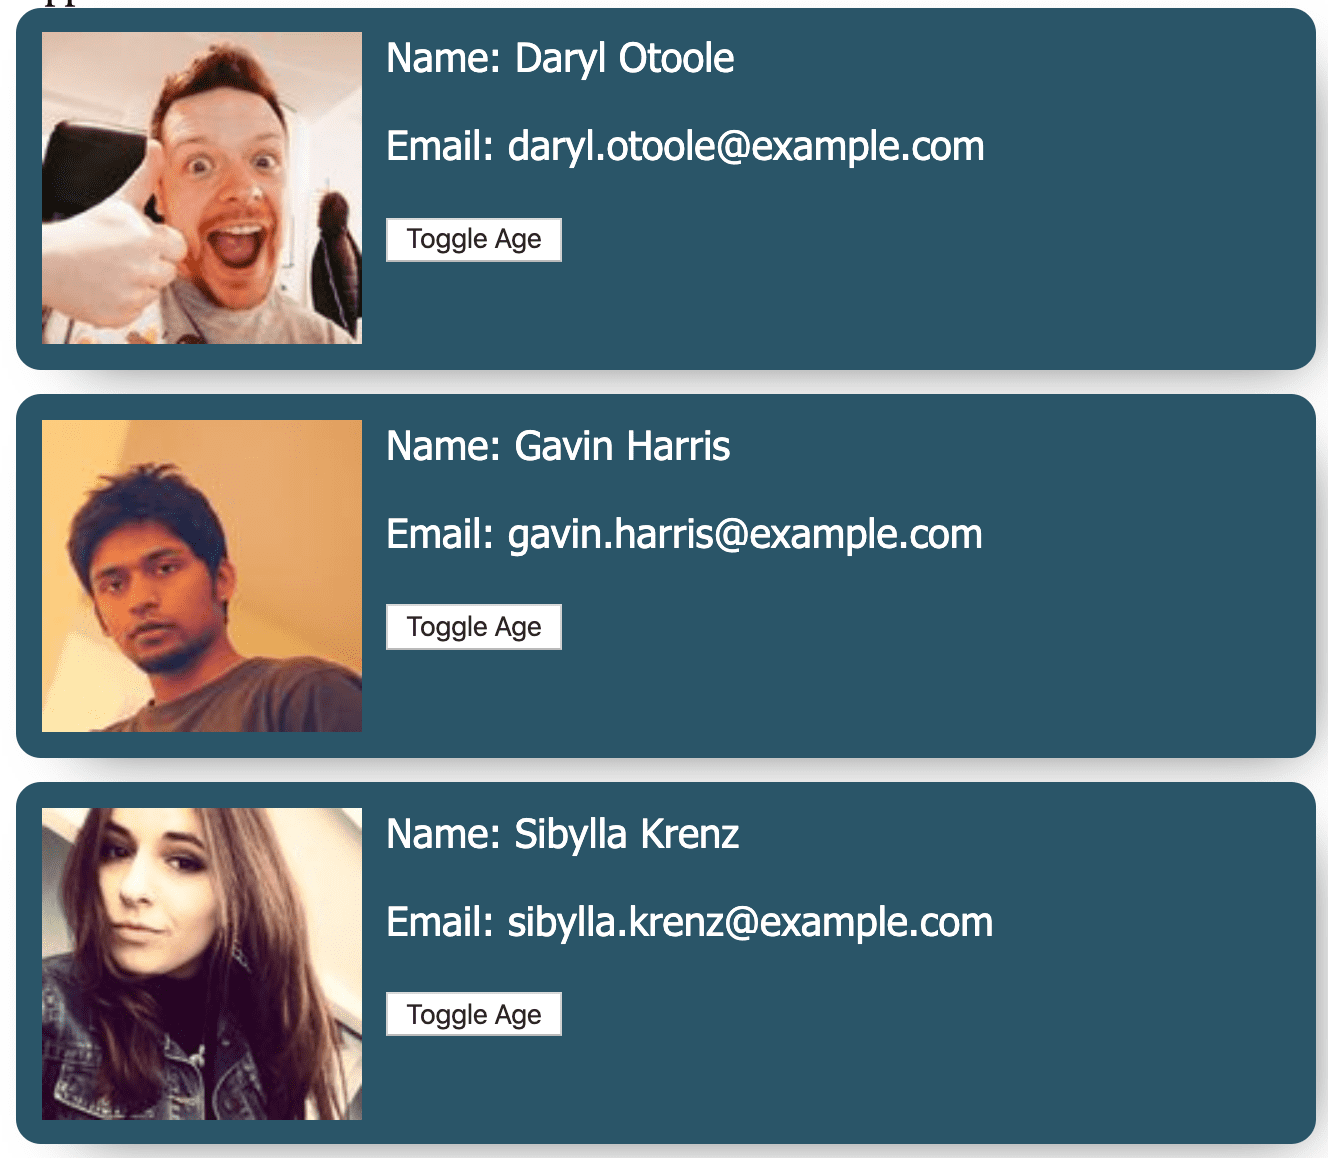 contacts-list-intro.png